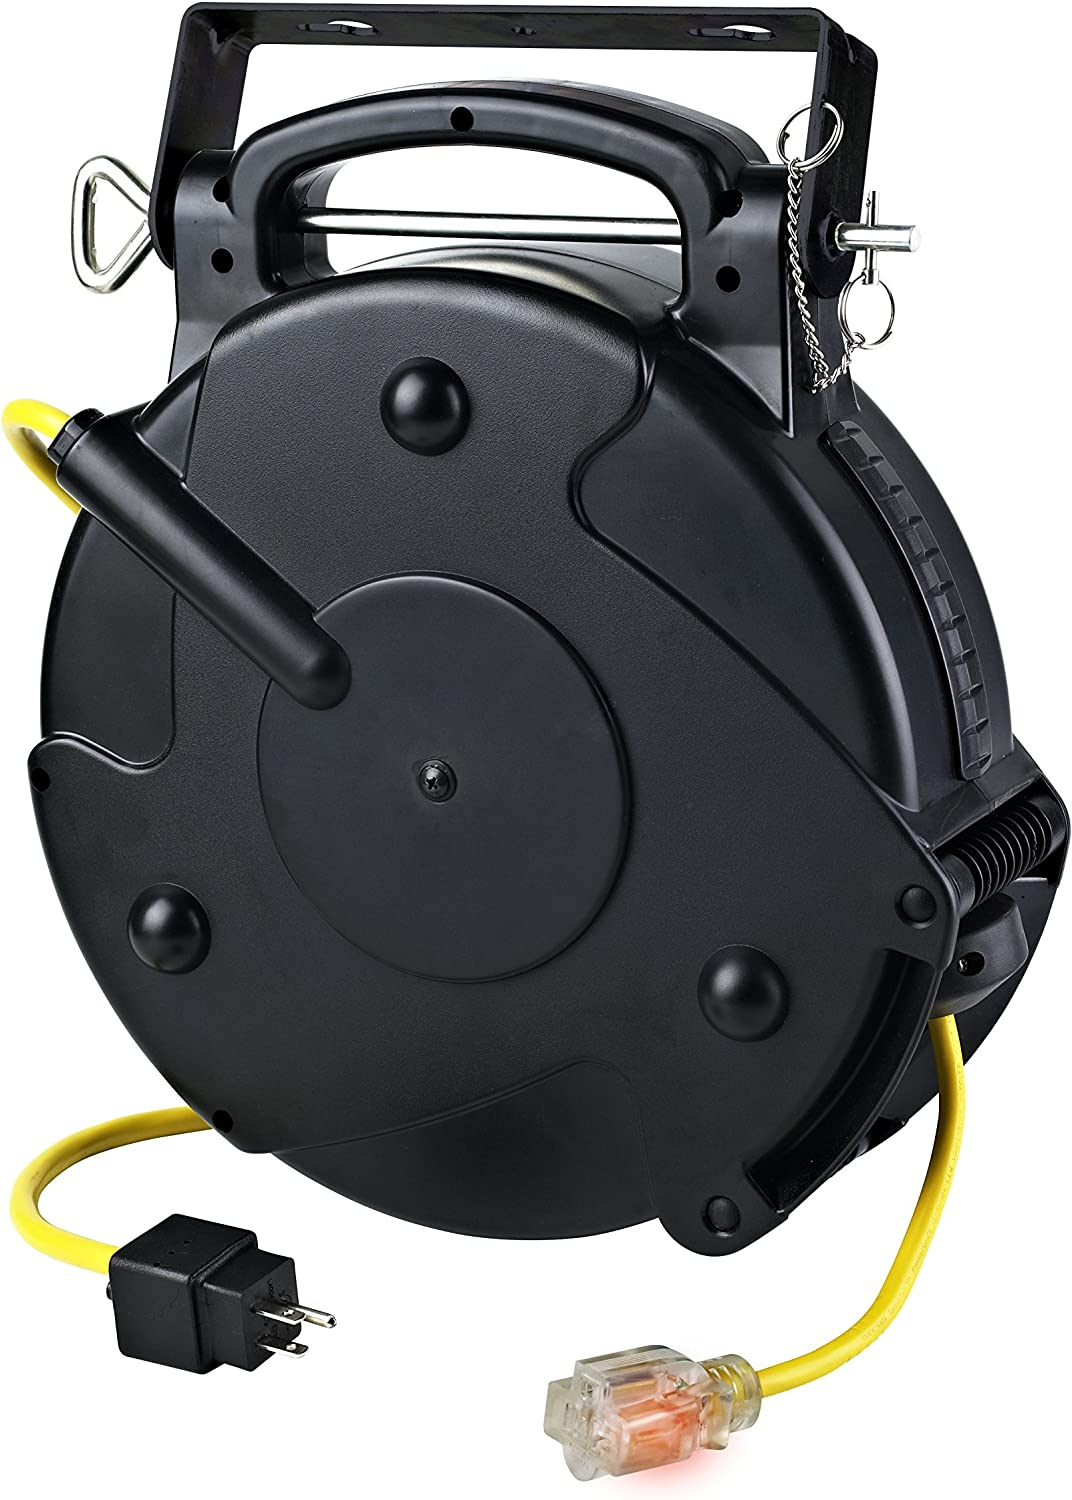 Alert Stamping 8665tfs Heavy Duty 12 3 65 Foot Single Tap Industrial Retractable Extension Cord Reel Amazon Com